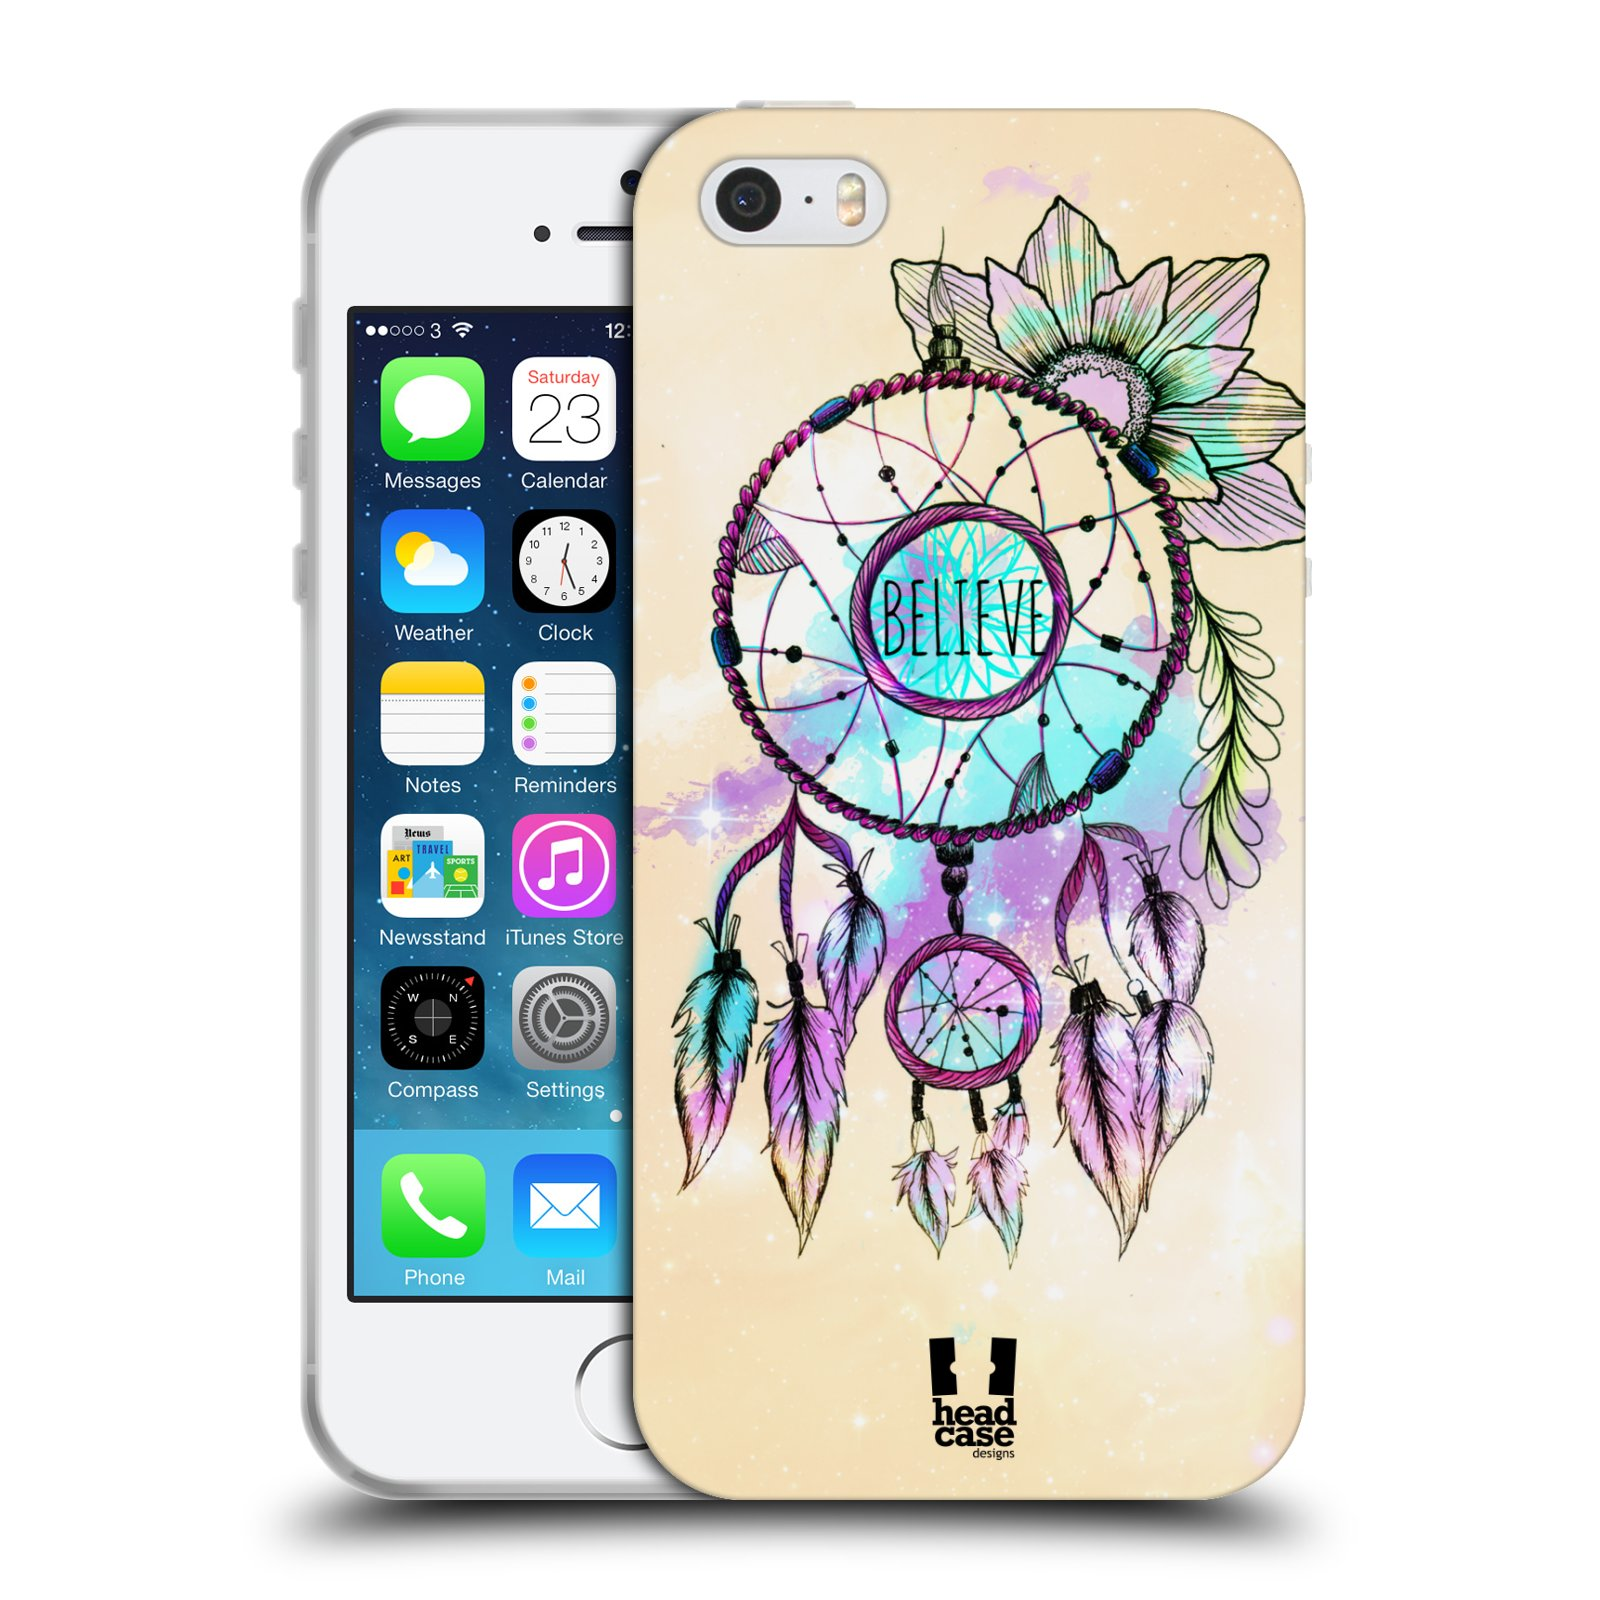 Silikonové pouzdro na mobil Apple iPhone 5, 5S, SE - Head Case - MIX BELIEVE